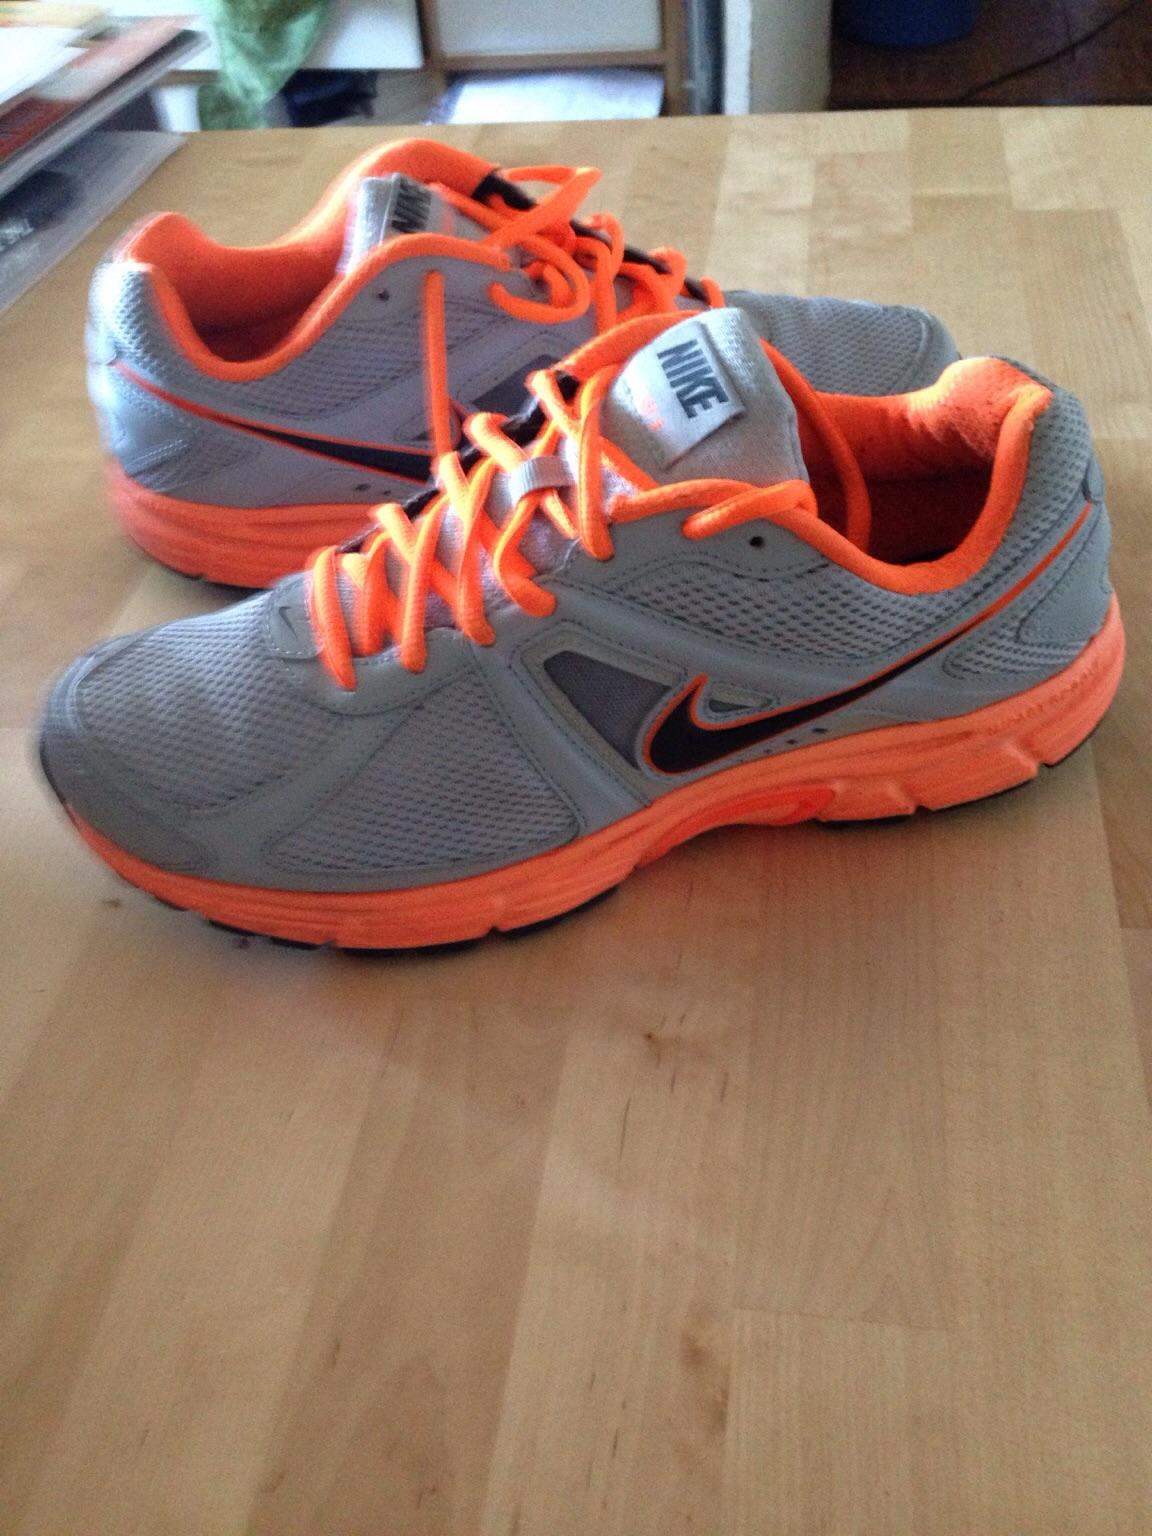 Fahrenheit lazo Más que nada  Men's Nike impact groove running shoes in W4 London for £40.00 for sale |  Shpock